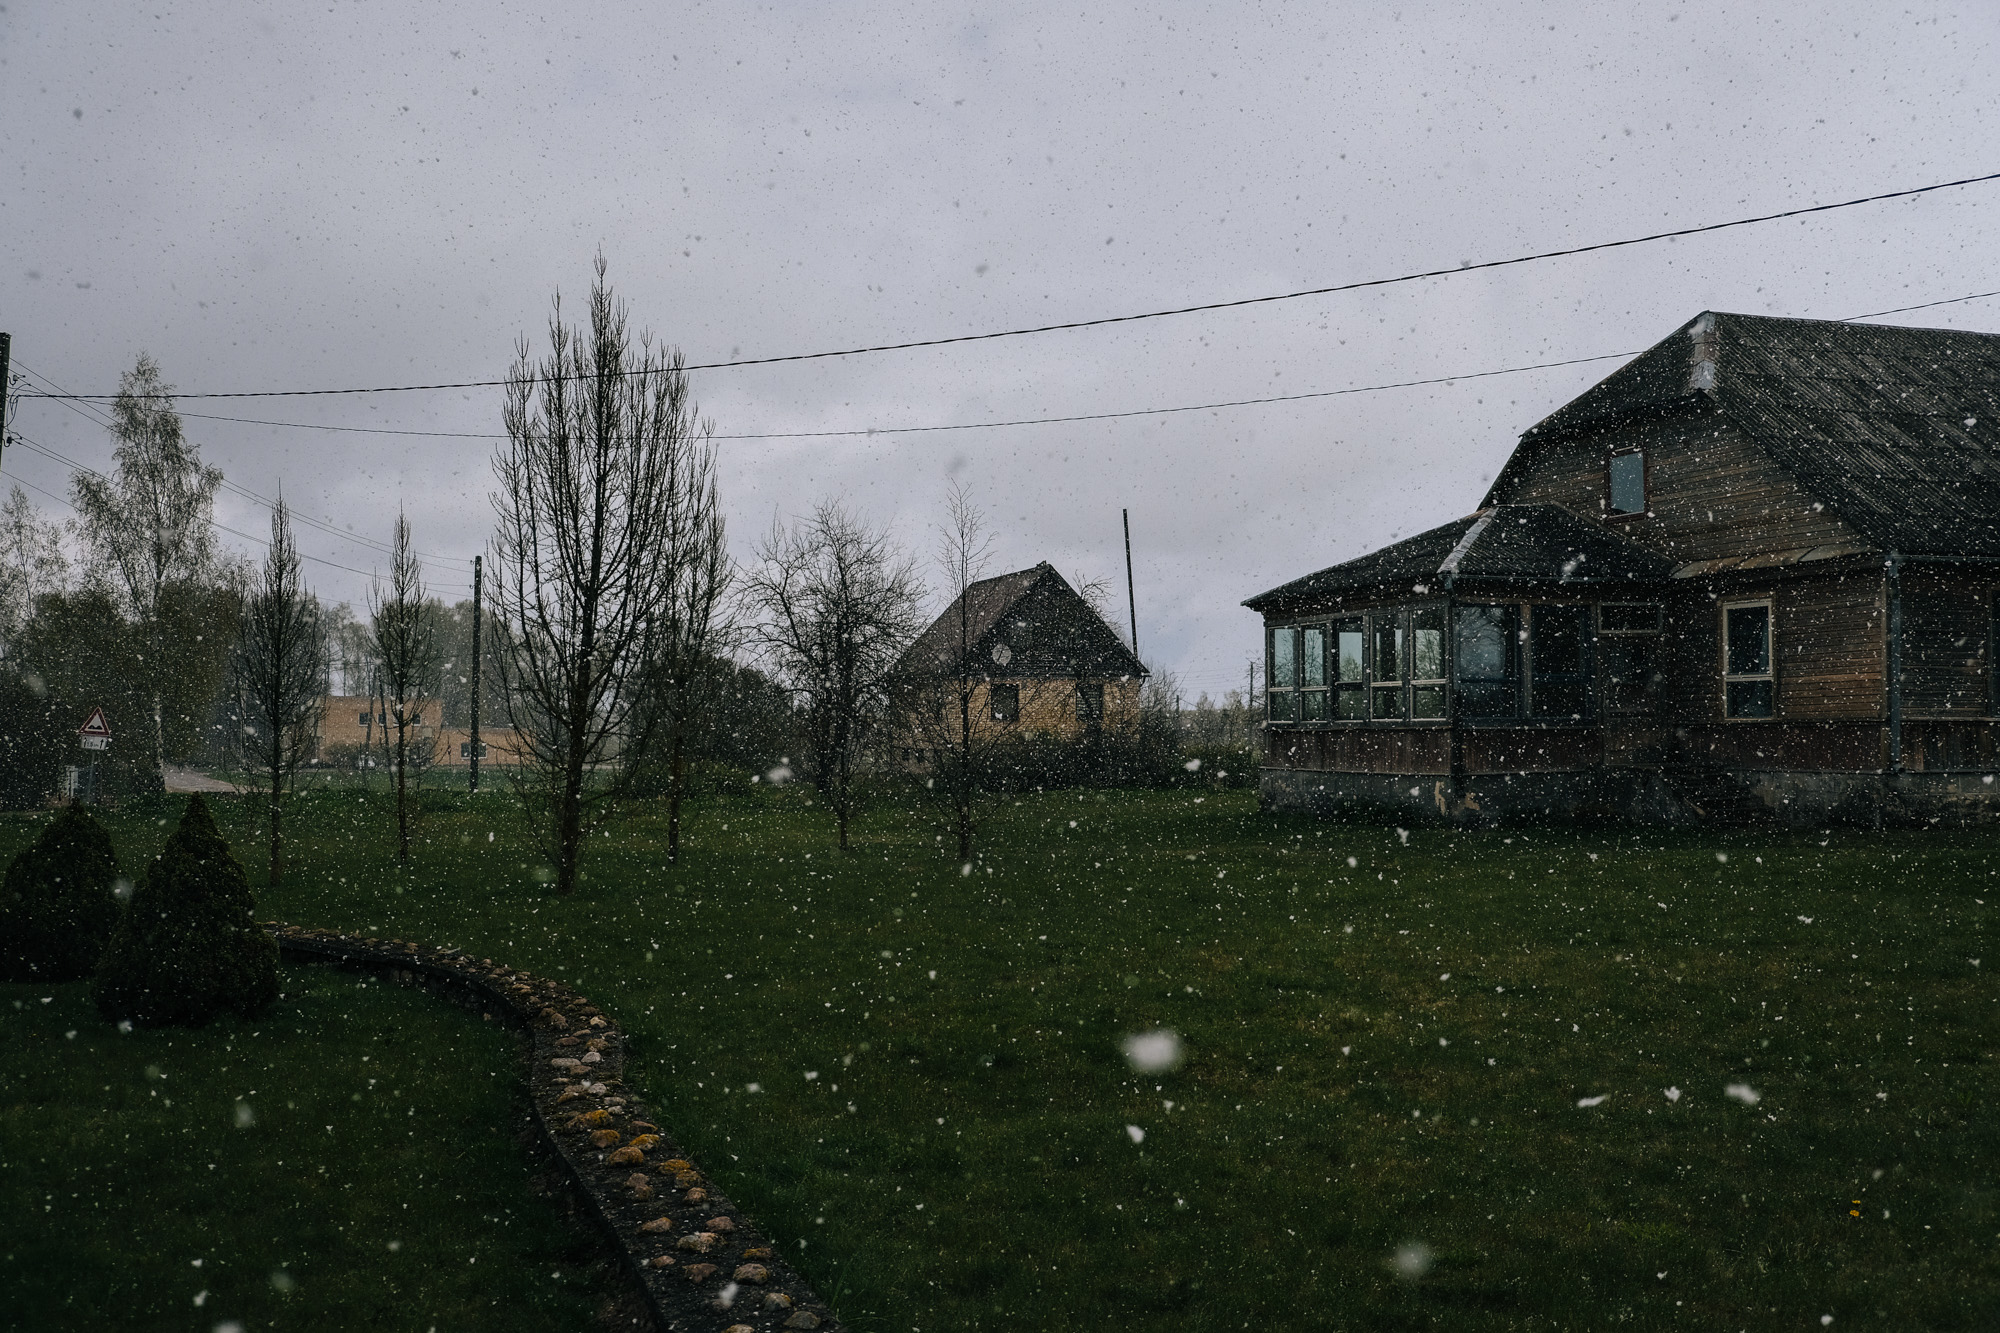 Kalupe - Latgale. The village, like the region, has been suffering from the high emigration rates. Many of the buildings and houses in the village are no more in use.